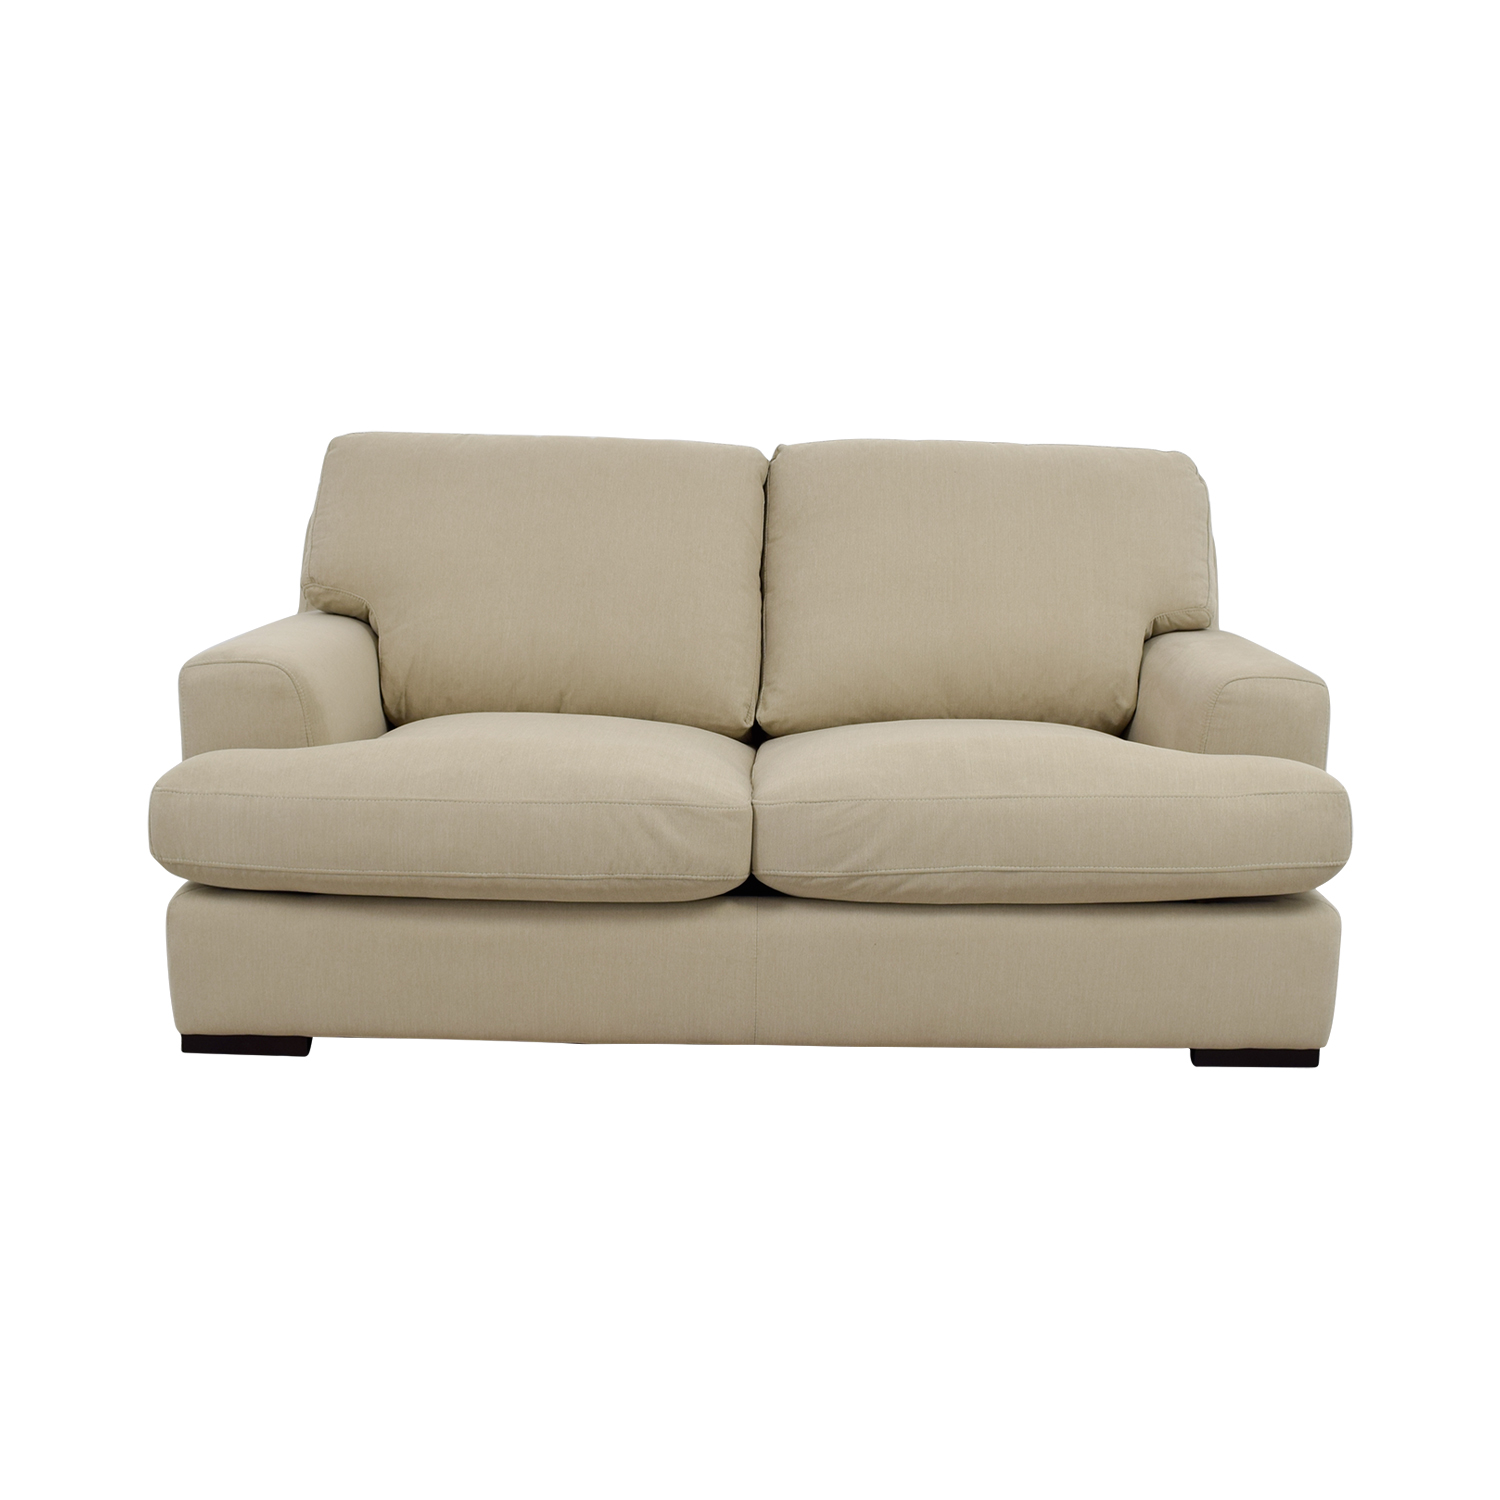 Stone & Beam Stone & Beam Lauren Down Filled Overstuffed Fawn Loveseat coupon